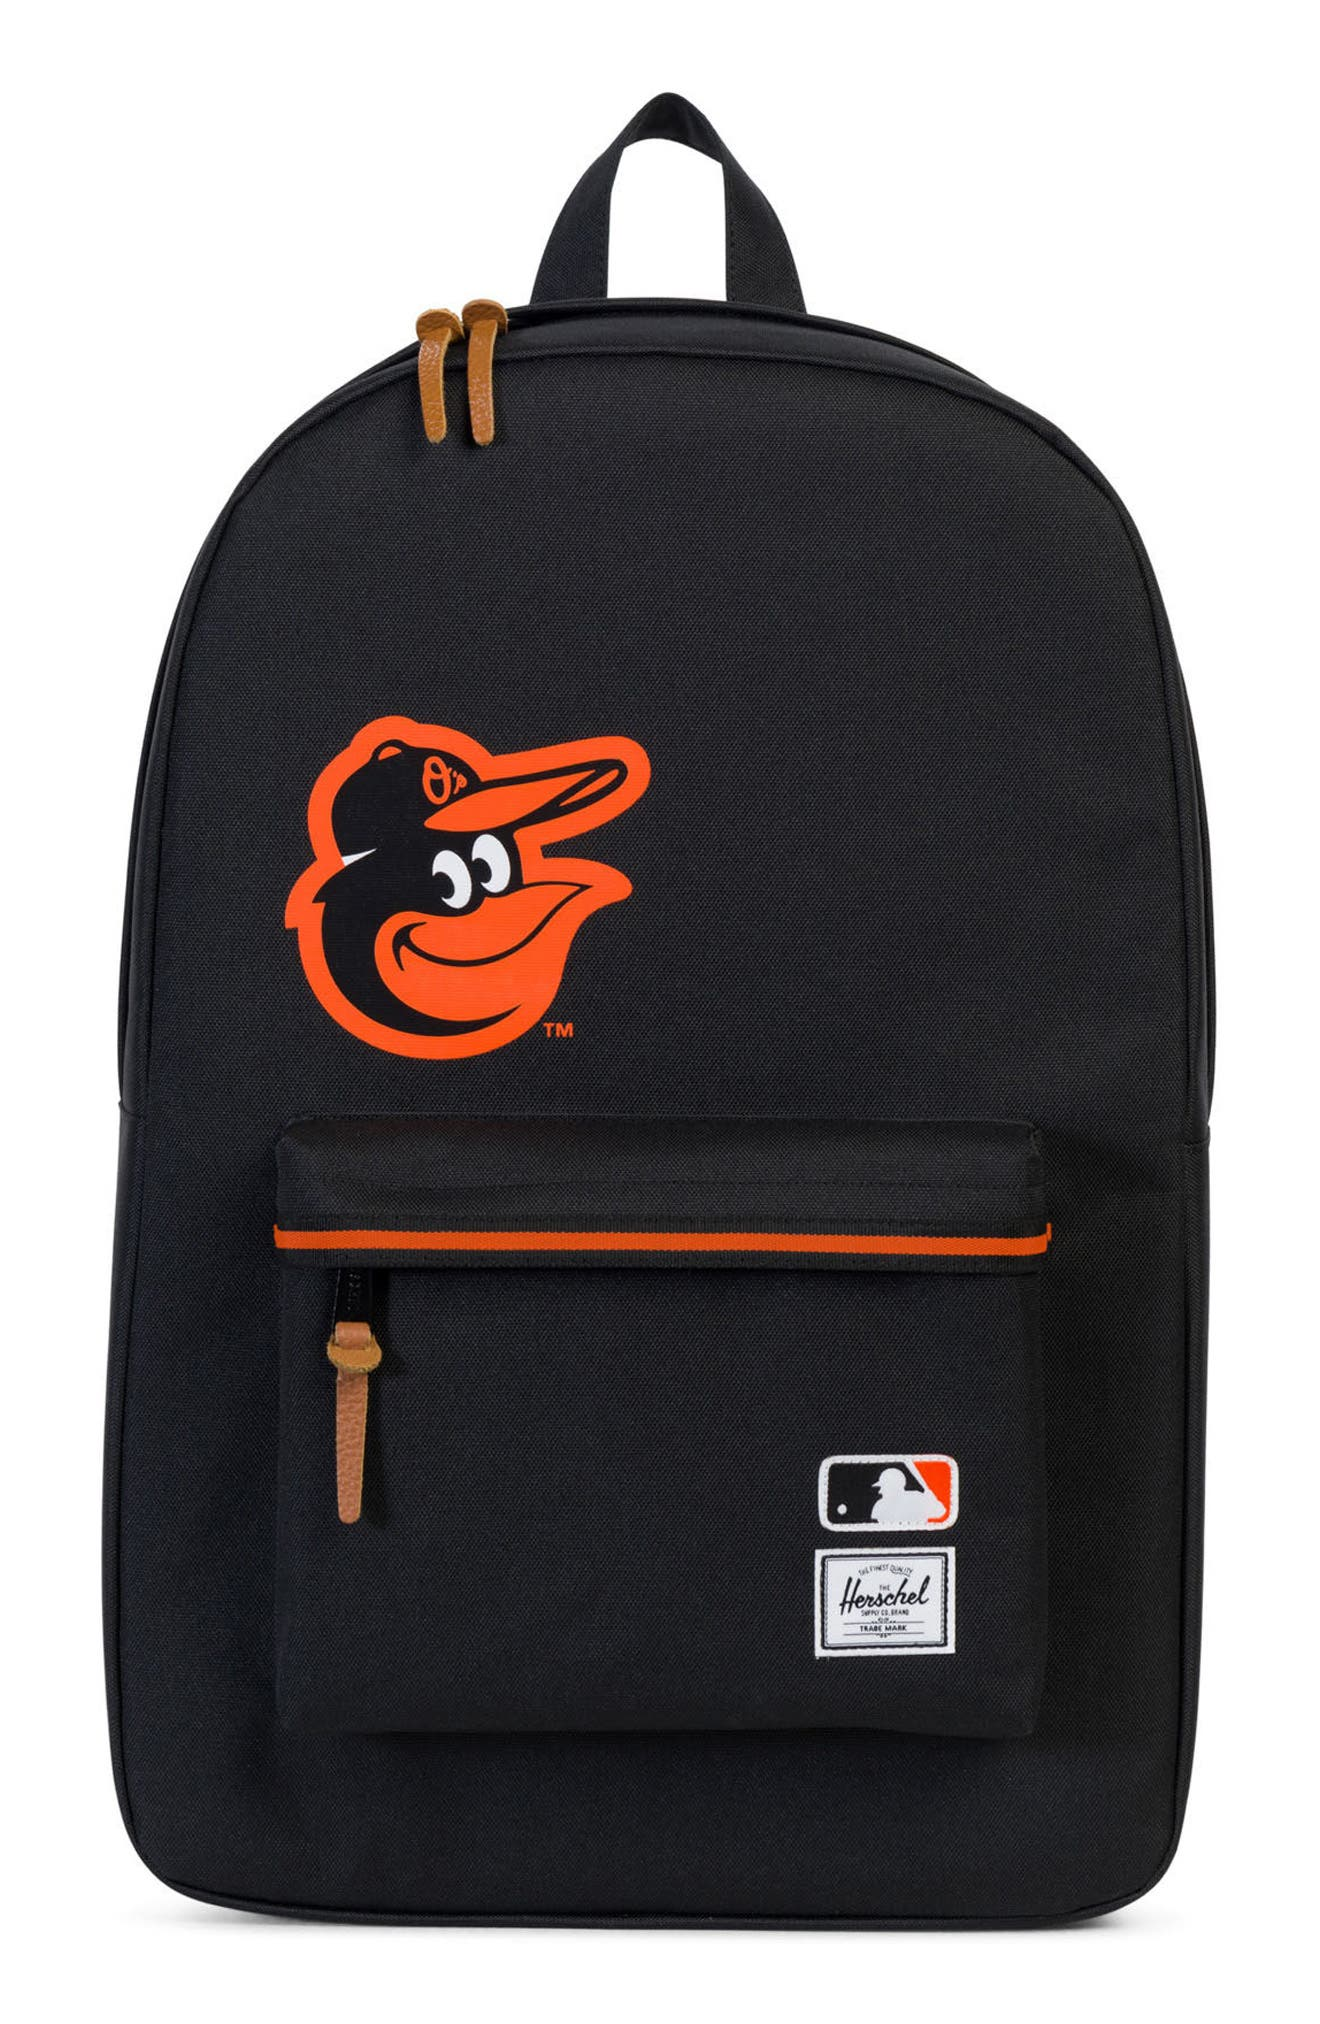 Heritage - MLB American League Backpack,                         Main,                         color, 001